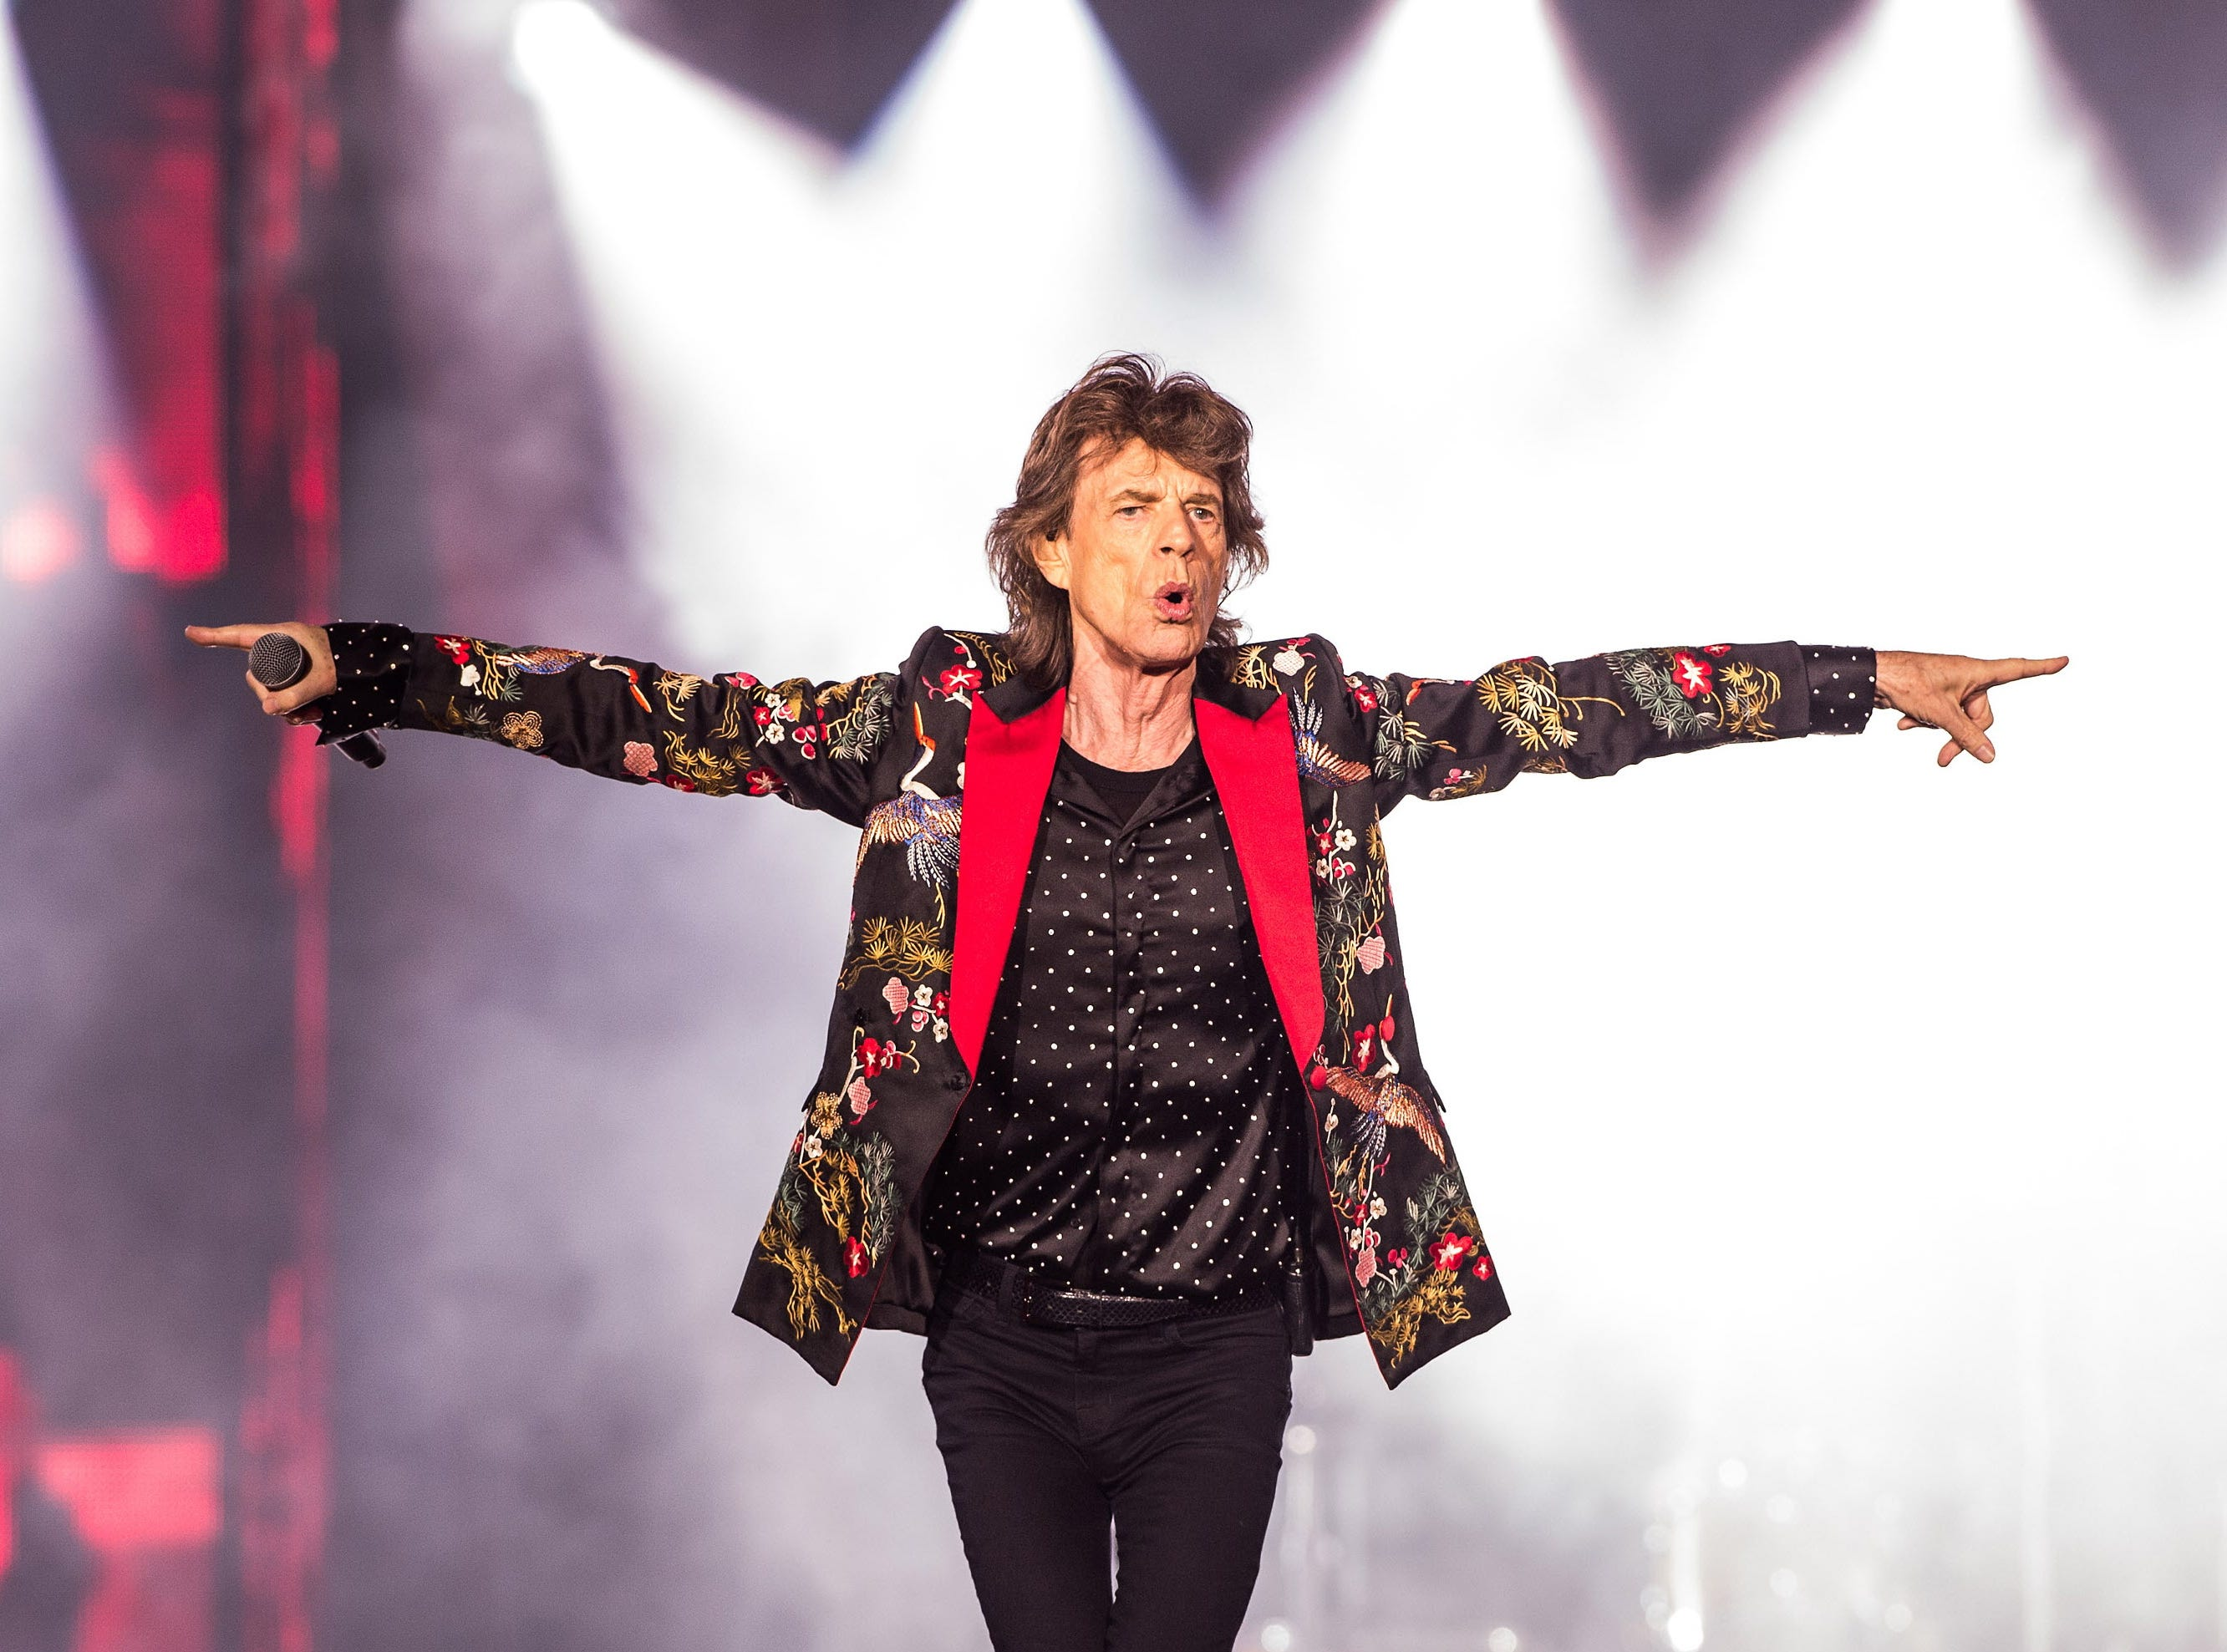 NANTERRE, FRANCE - OCTOBER 19:  Mick Jagger of The Rolling Stones performs live on stage at U Arena on October 19, 2017 in Nanterre, France.  (Photo by Brian Rasic/WireImage) ORG XMIT: 775059905 ORIG FILE ID: 863227756